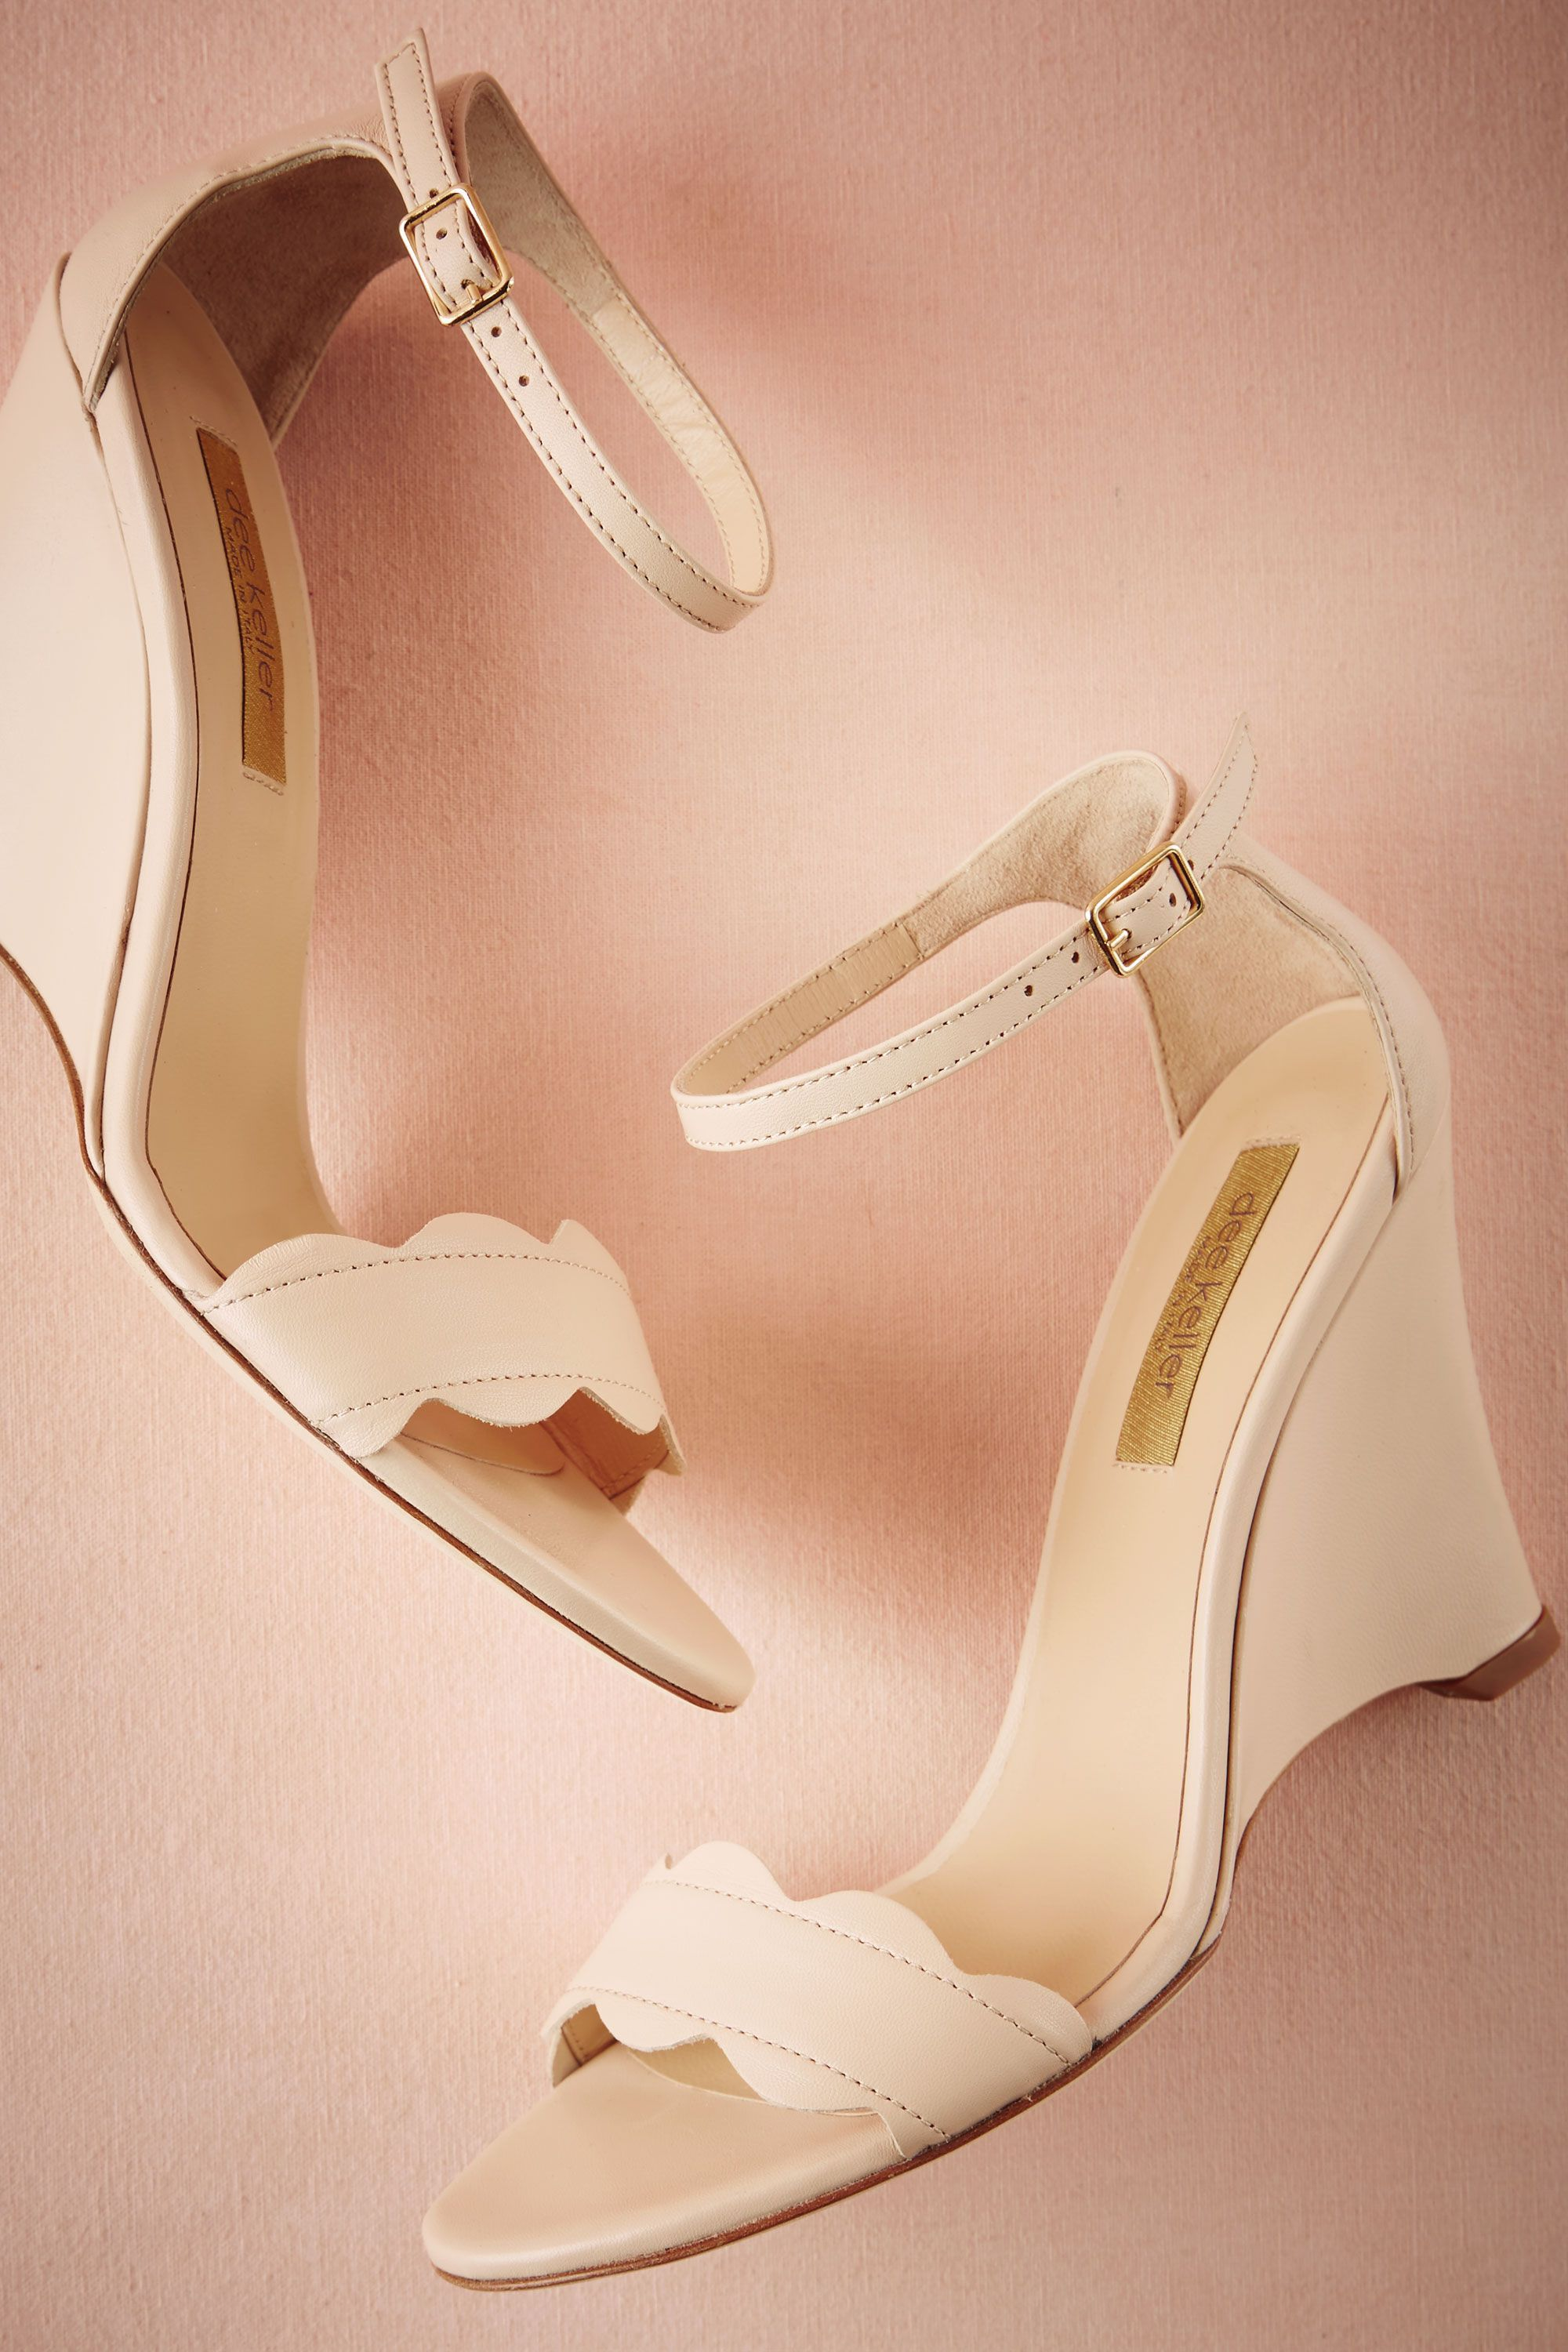 6172dd117fe0 Featuring silver and ivory wedding shoes and more! Kel - pricey but just  showing for another wedge idea. BHLDN Nimbus Wedges  270.00